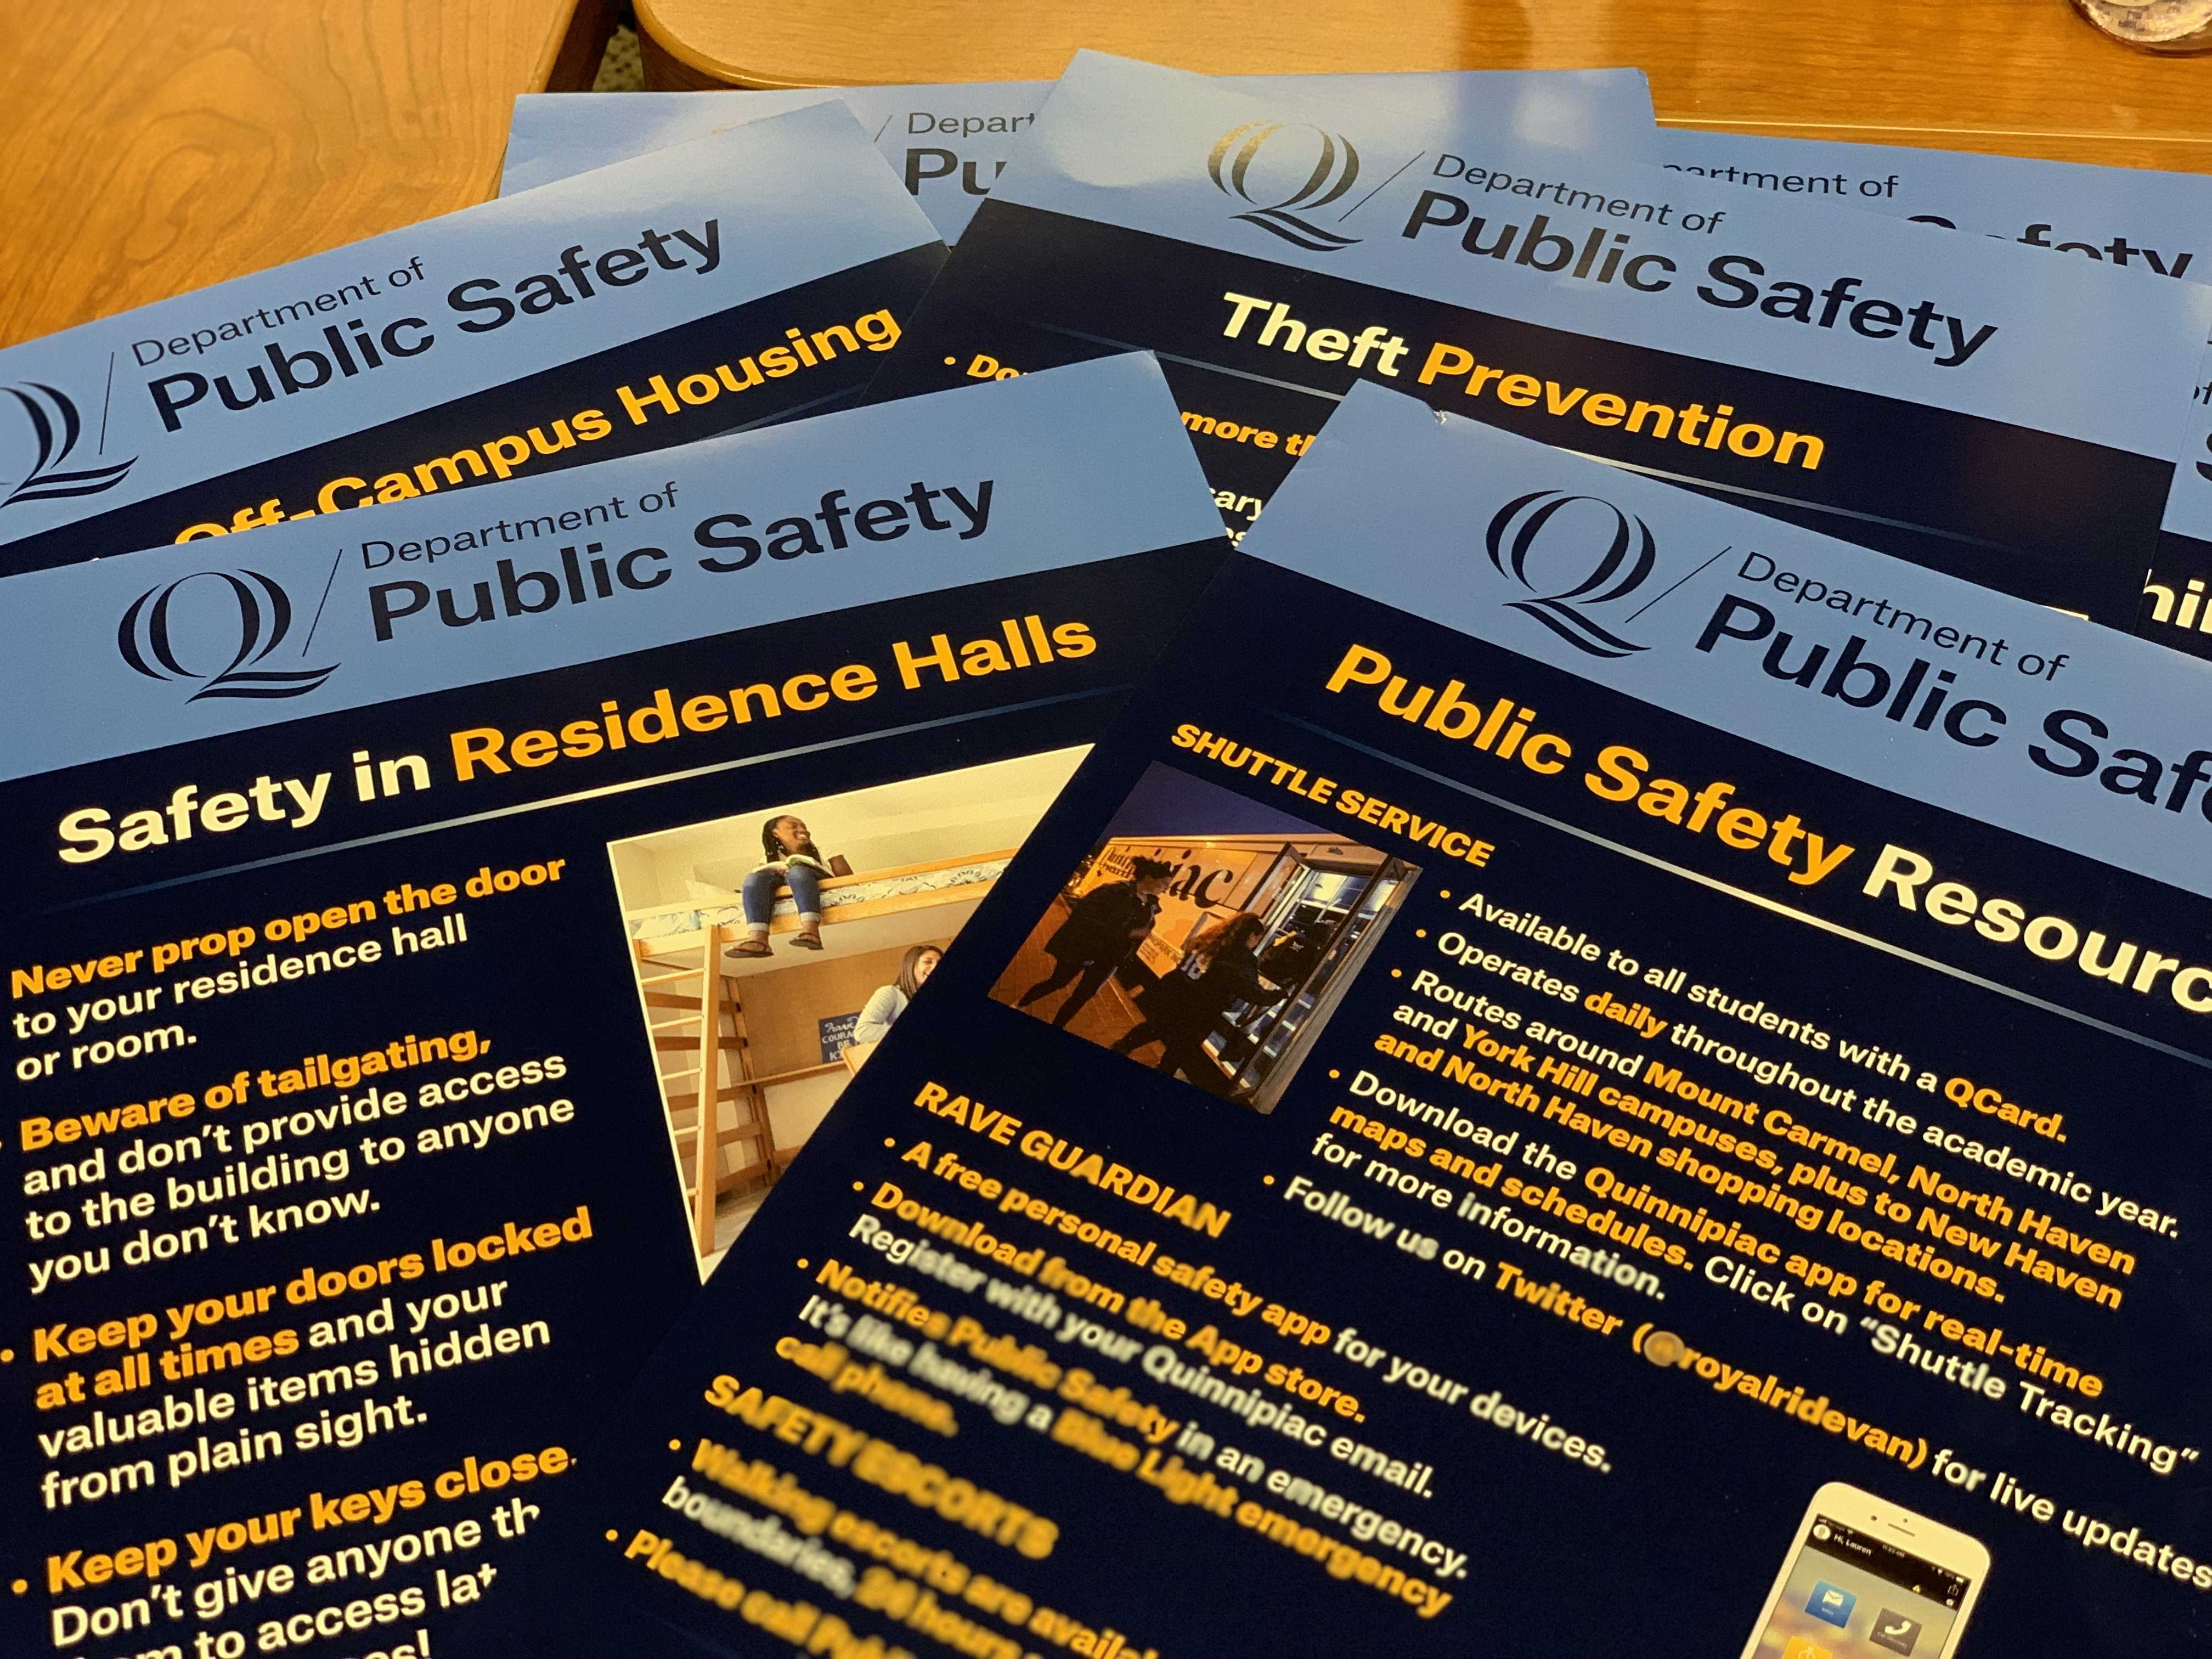 New safety posters to be displayed around campus